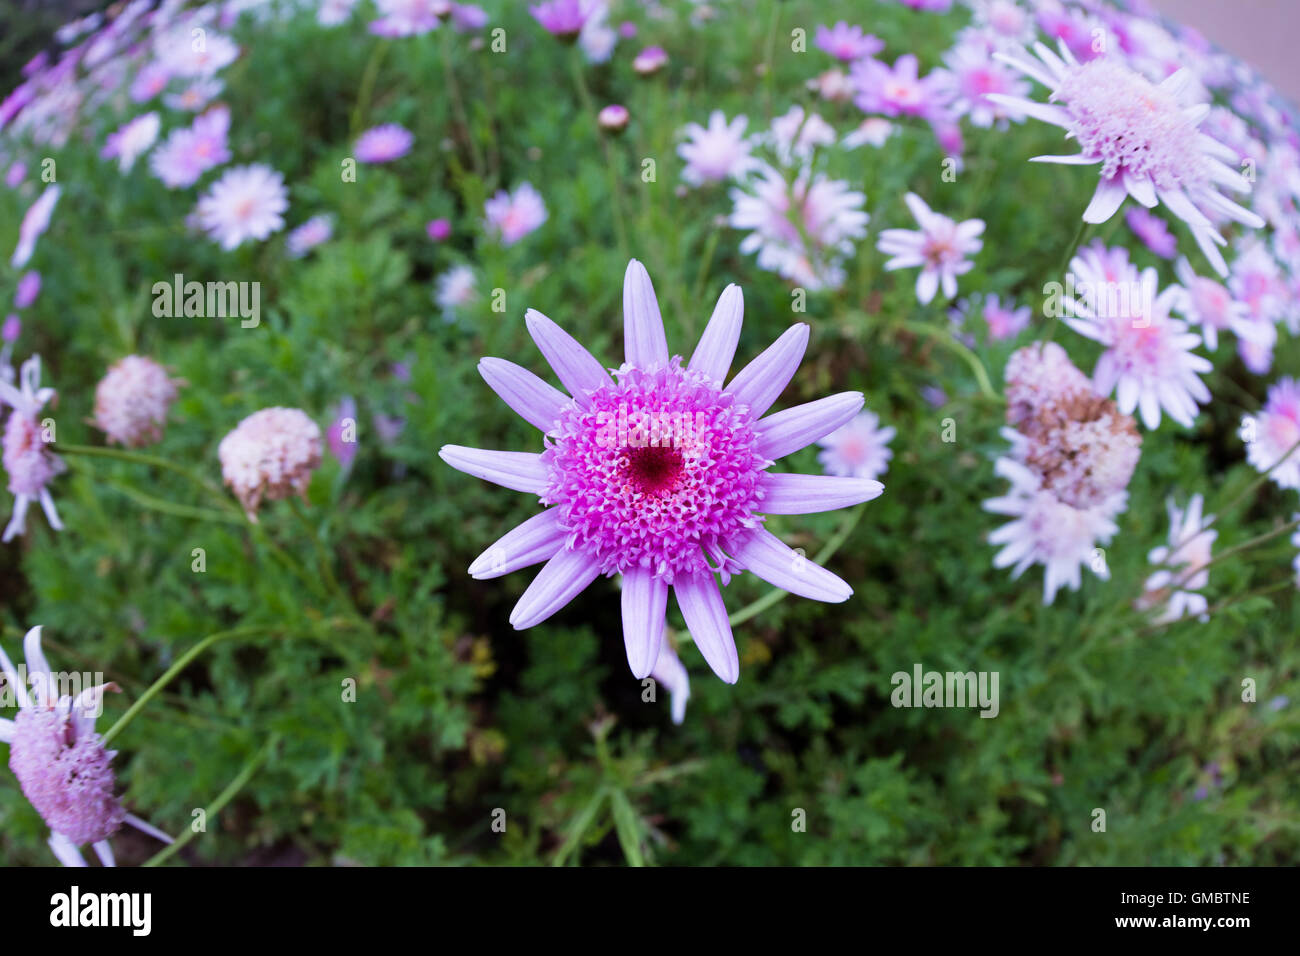 Close Up Of A Beautiful Garden With Blooming Flowers Using A Super